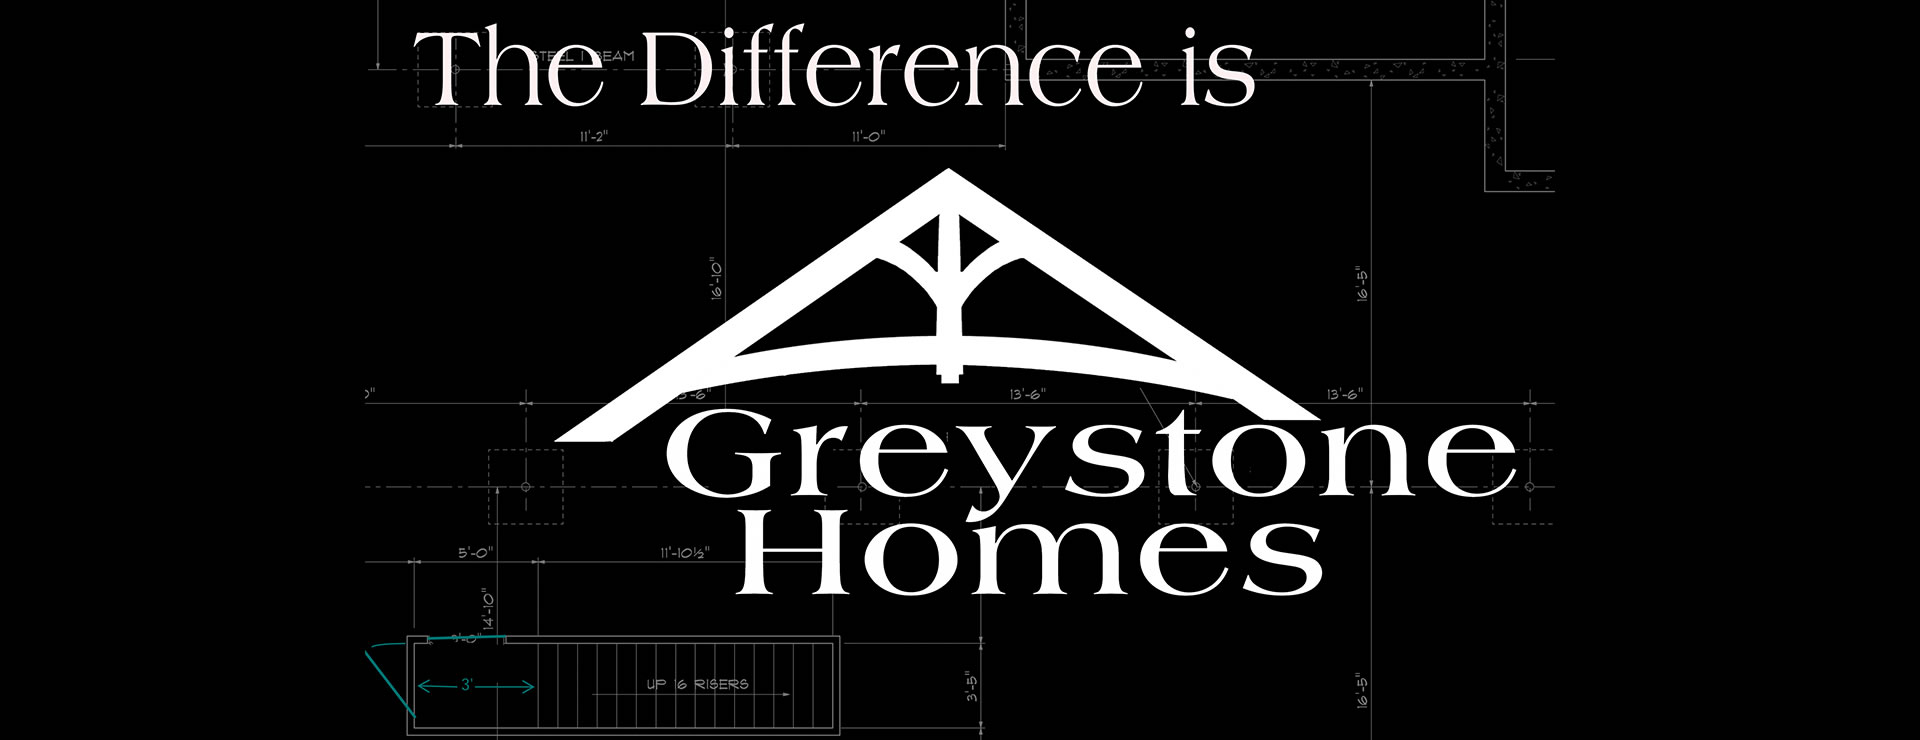 Greystone Difference